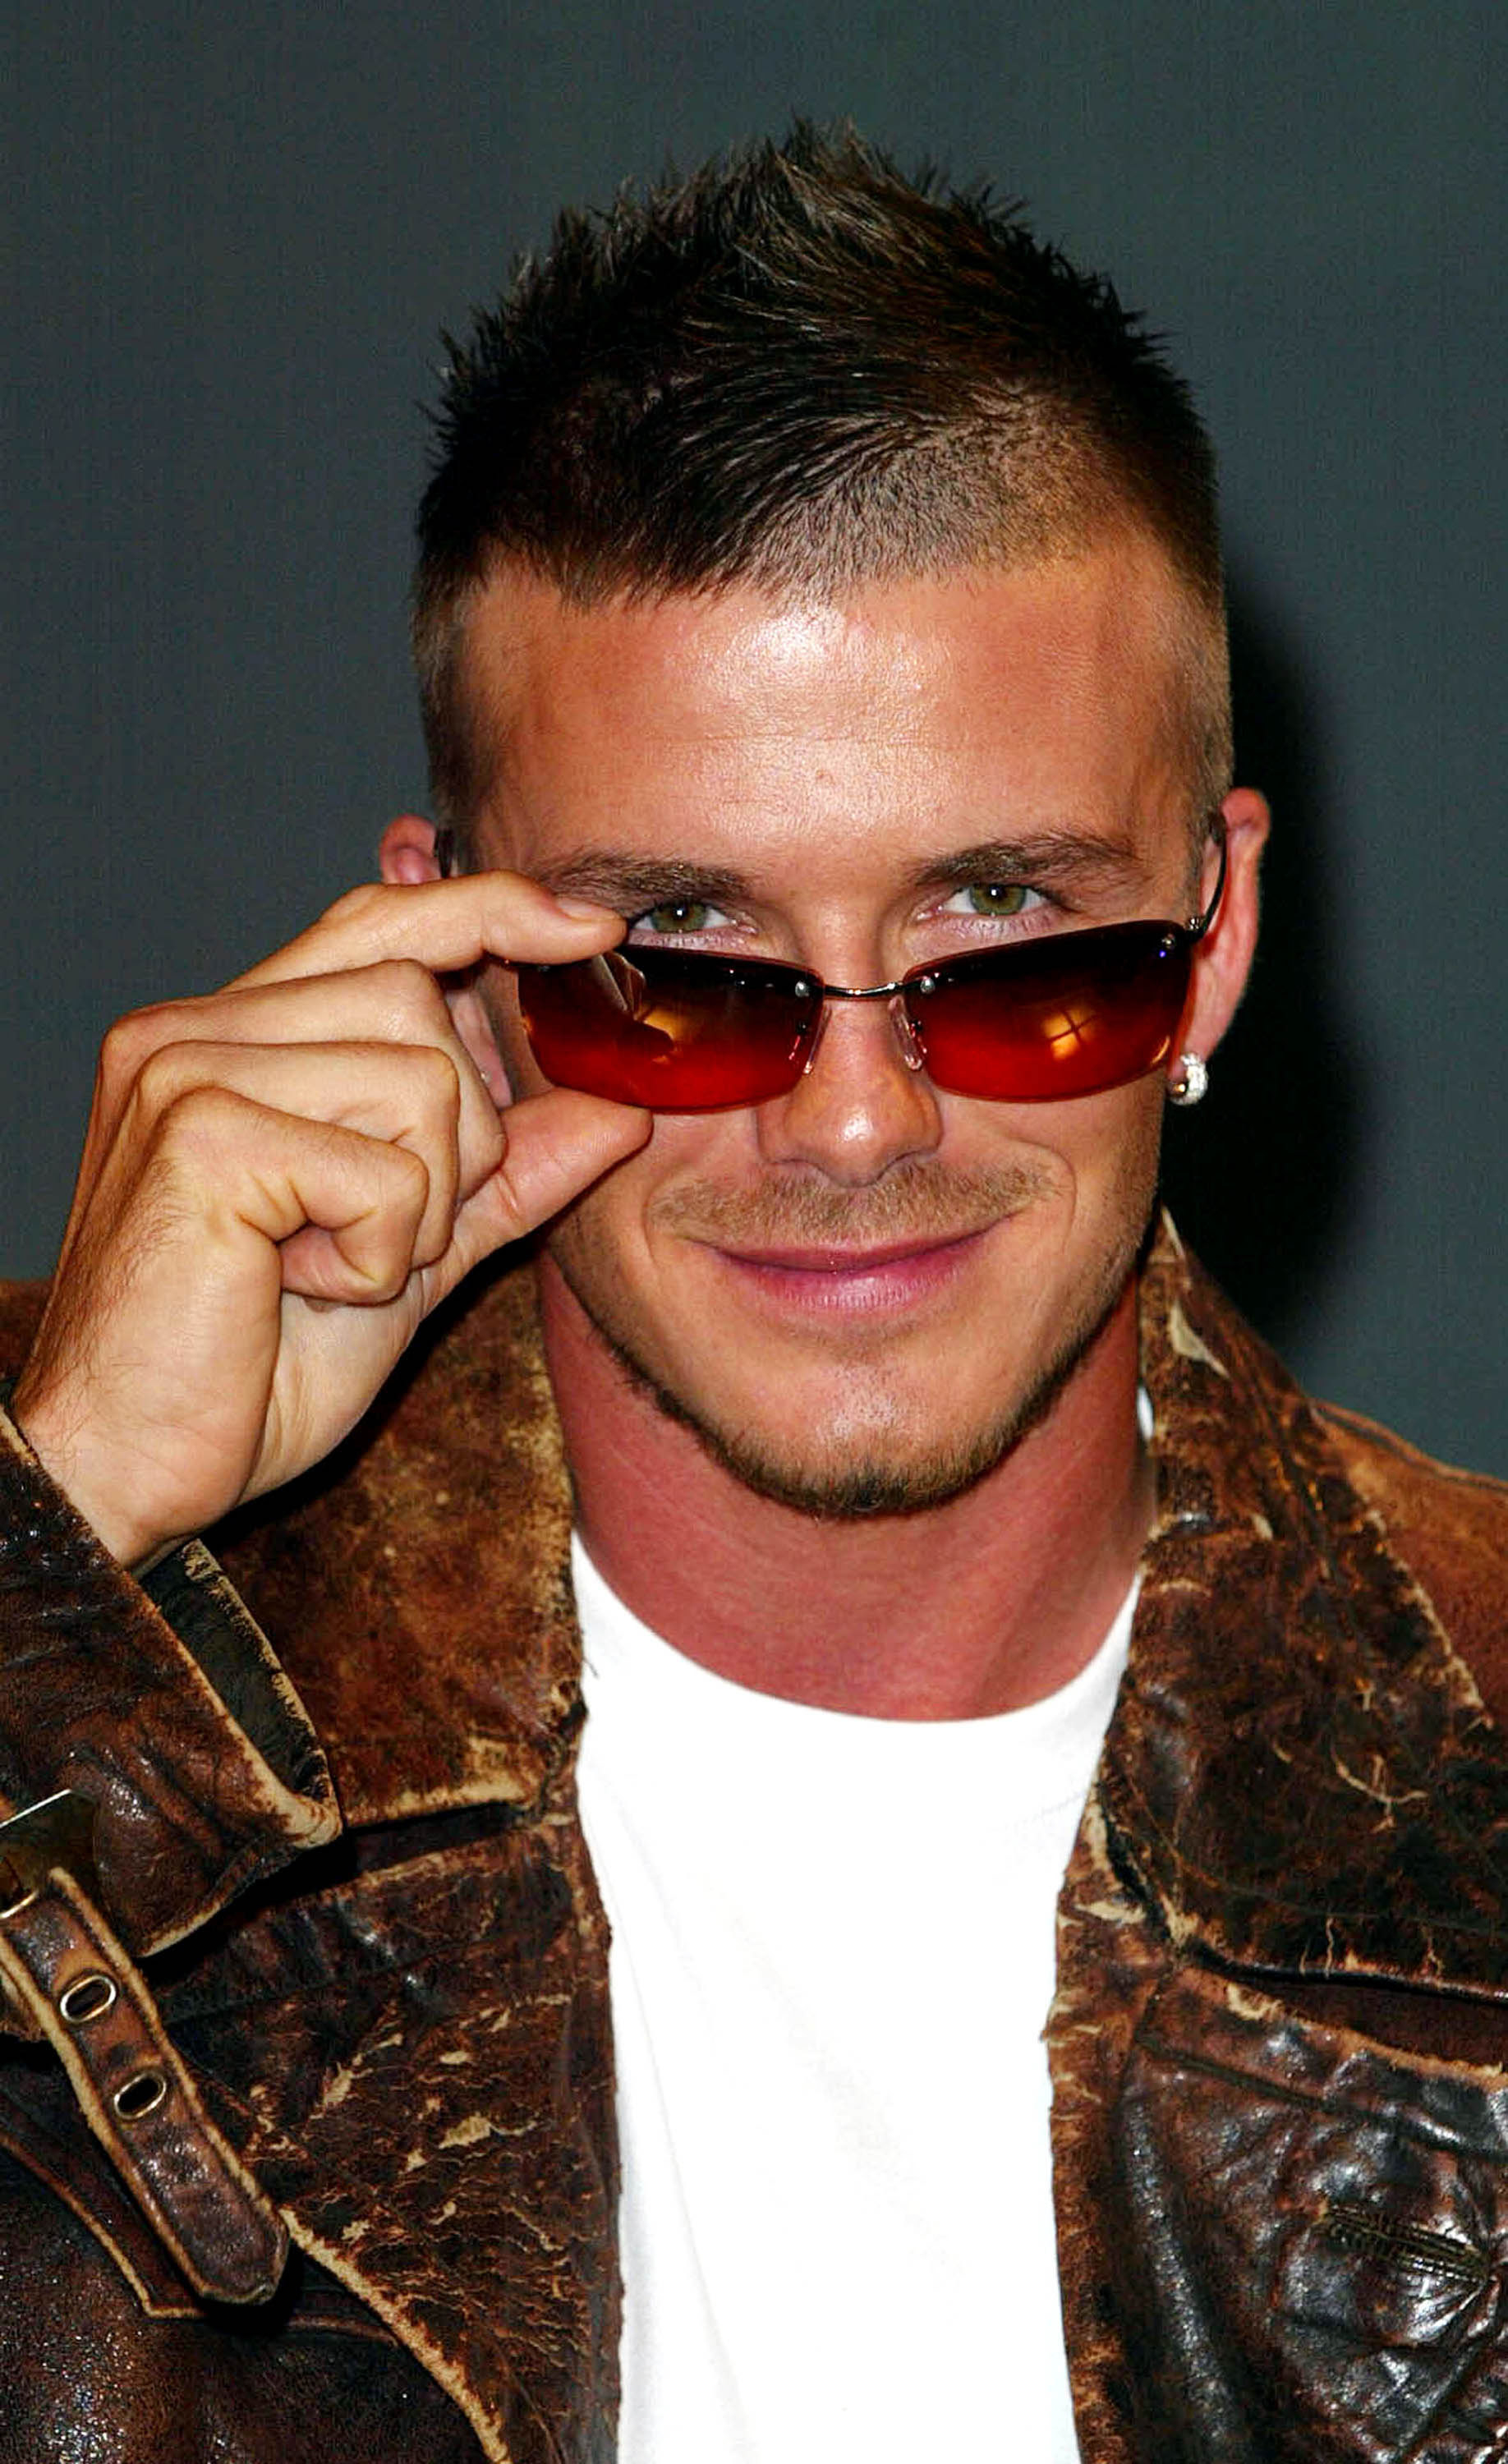 A photo of David Beckham slightly pulling down his brown-tinted sunglasses, while wearing a distressed brown leather jacket and white T-shirt.